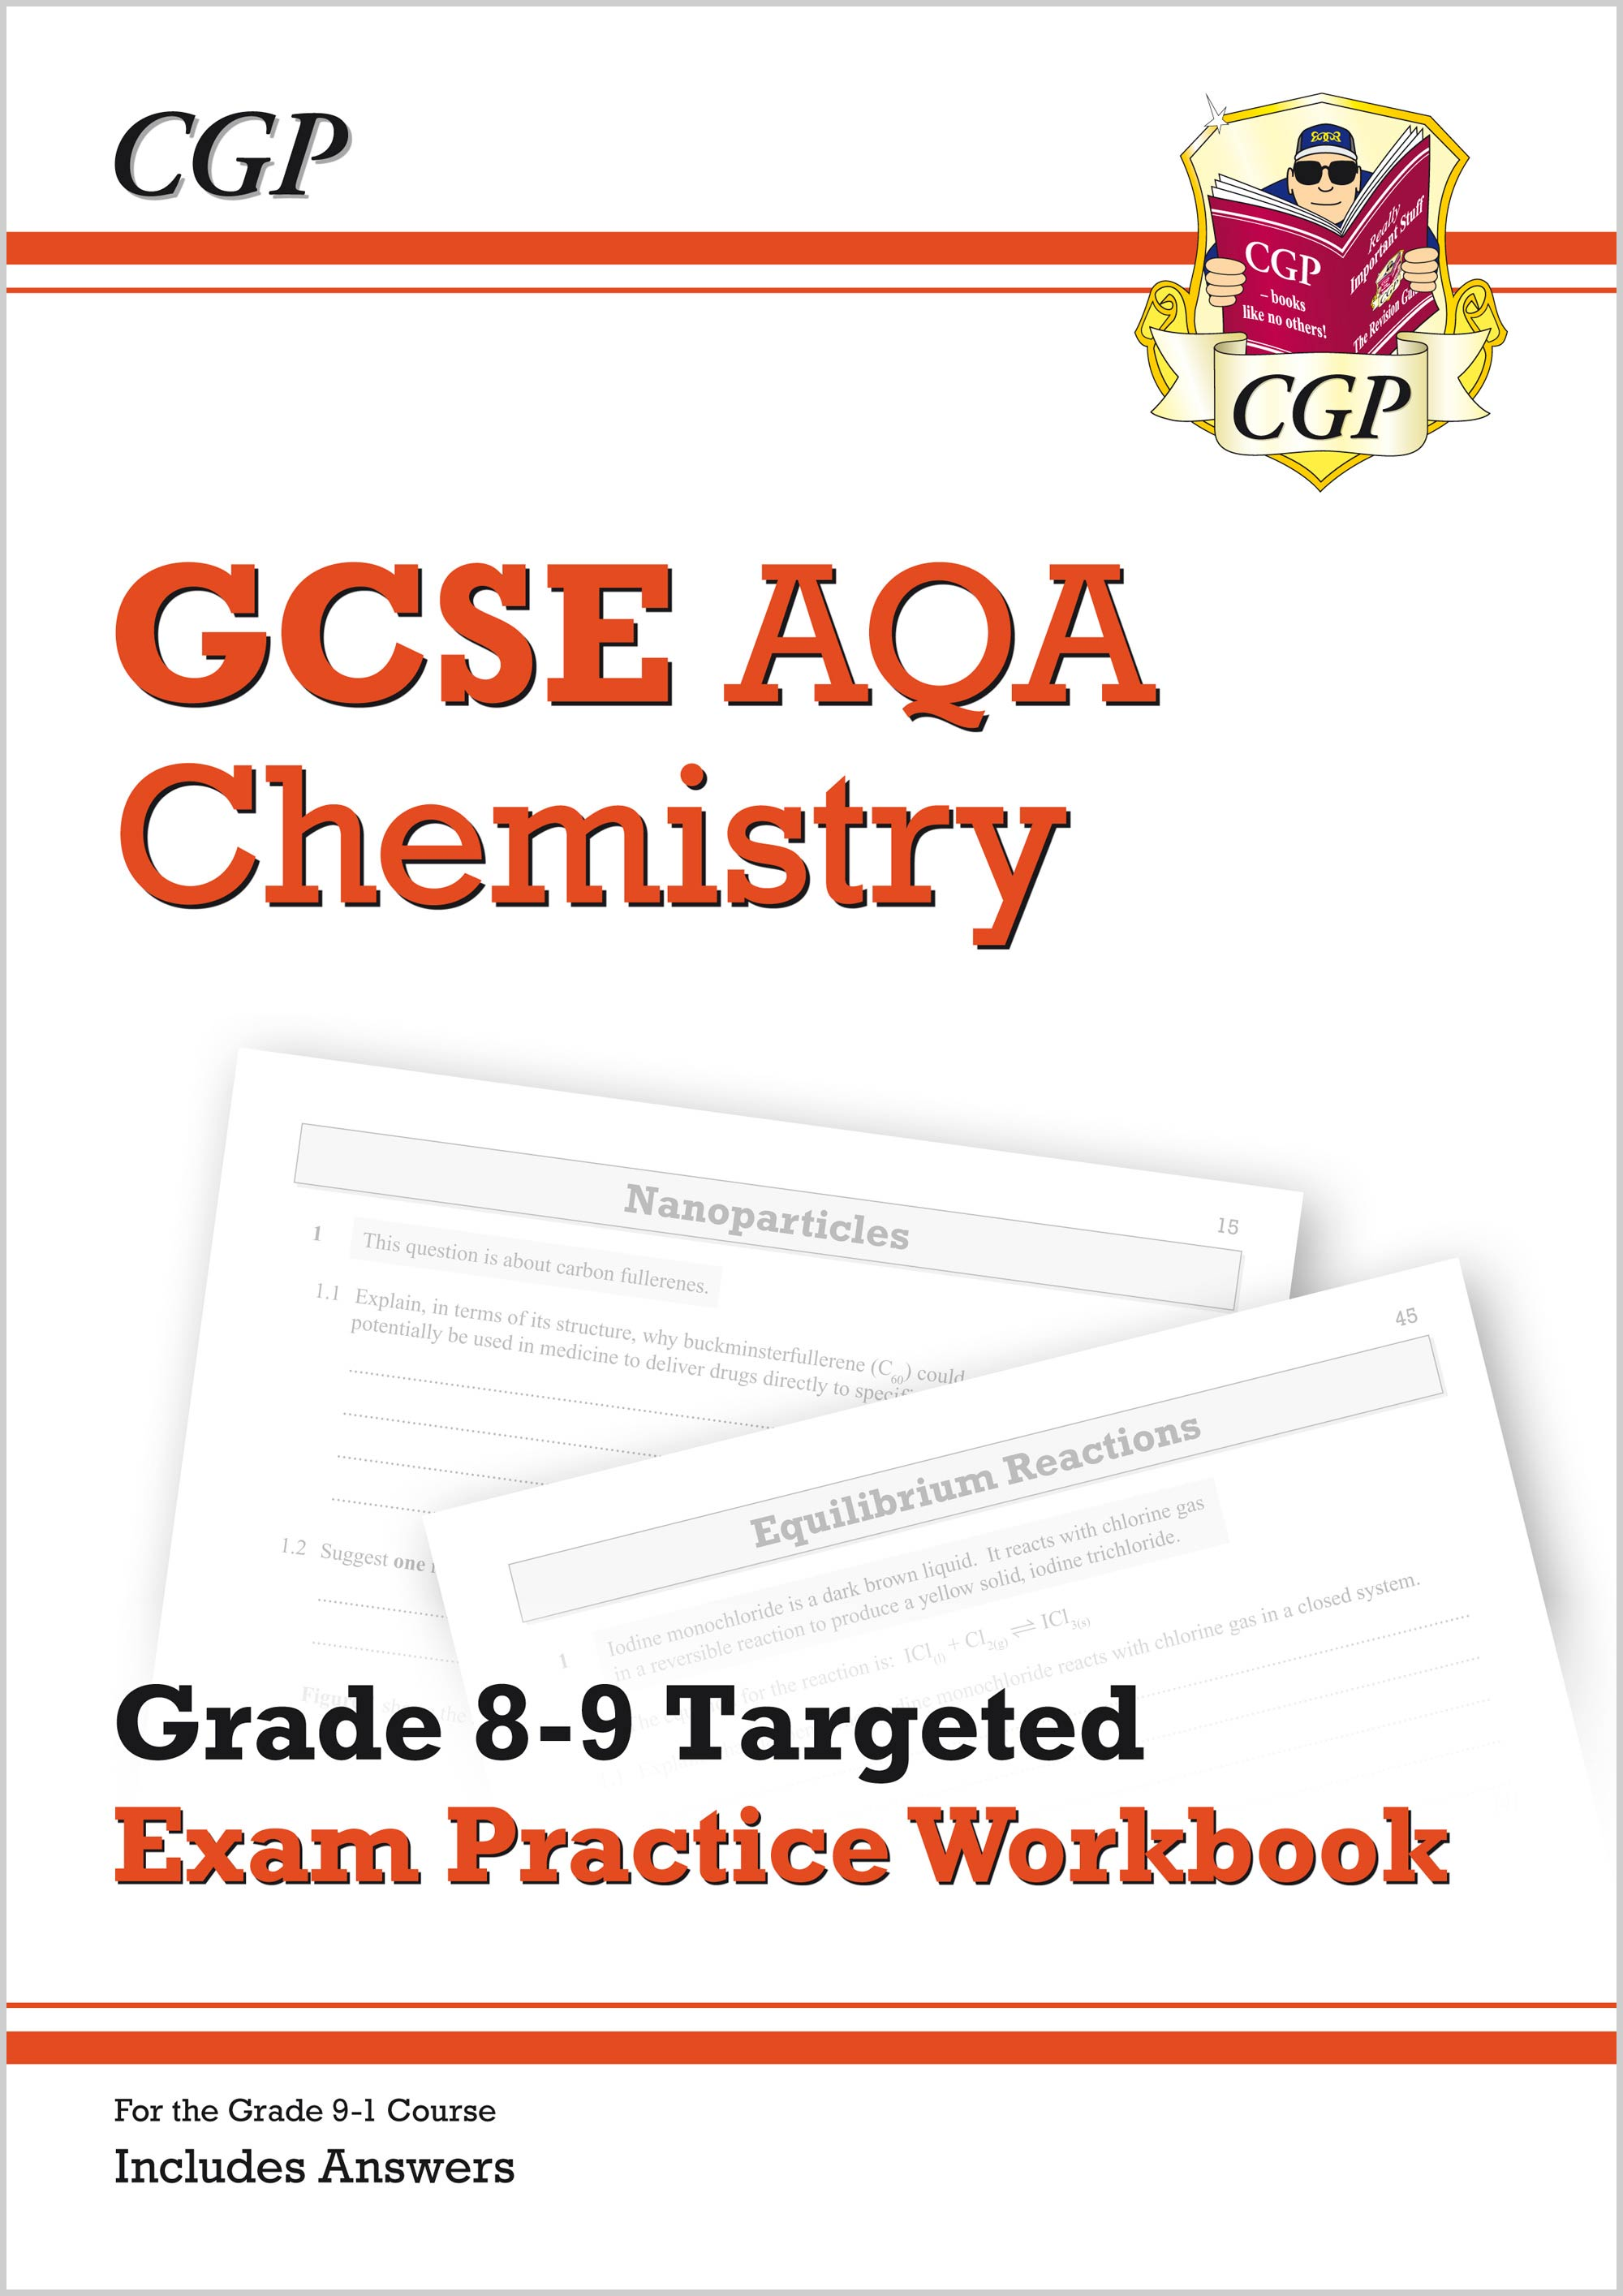 hight resolution of GCSE Chemistry AQA Grade 8-9 Targeted Exam Practice Workbook (includes  Answers)   CGP Books